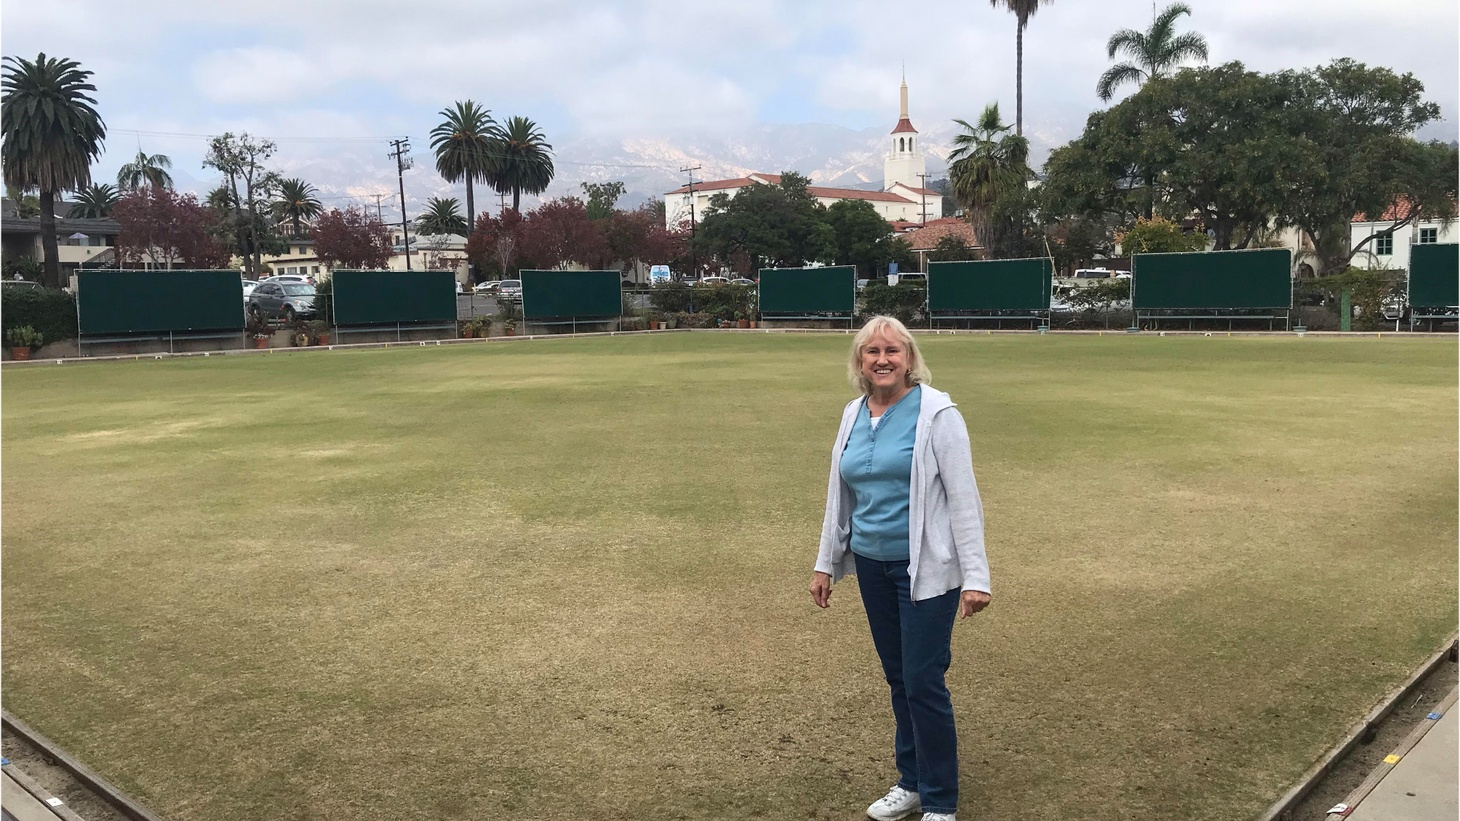 The city of Santa Barbara says it needs a new police station, but building one means displacing either farmers or lawn bowlers.